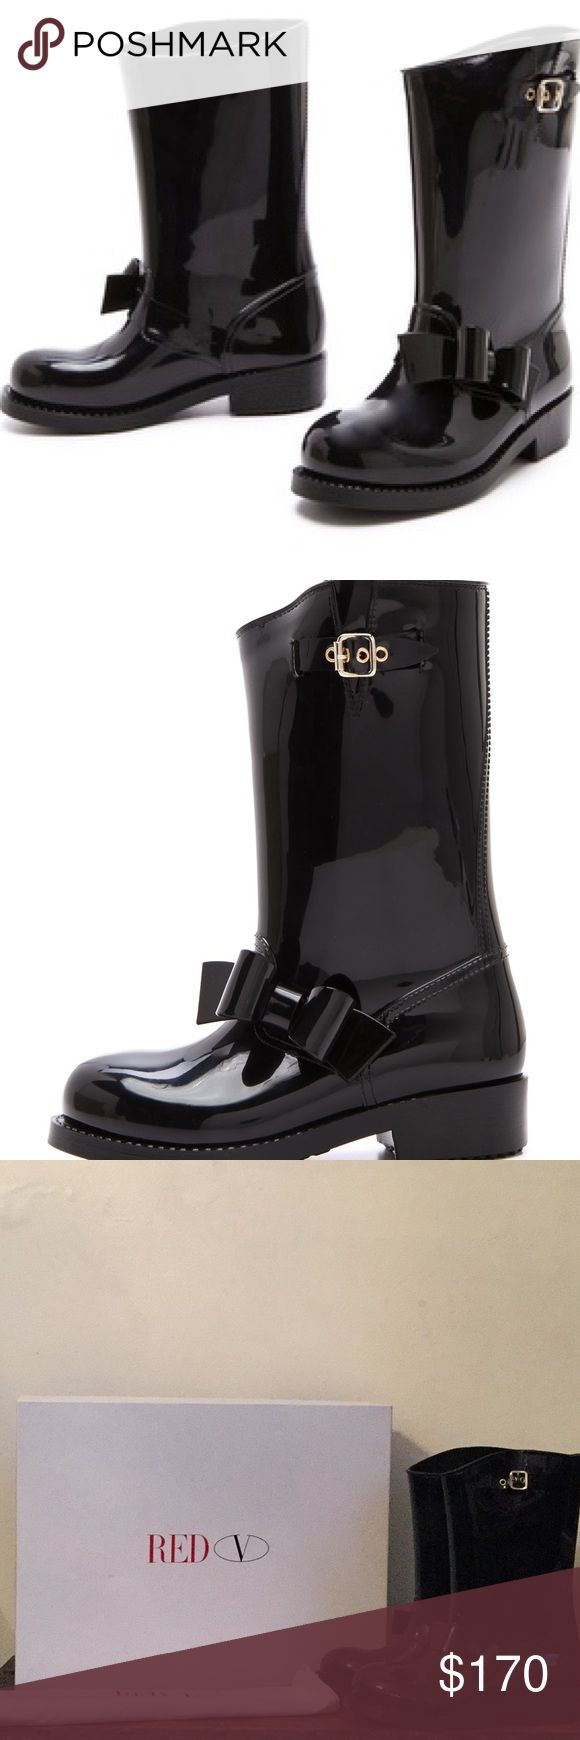 RED Valentino bow rain boots A soft rubber bow puts a cheerful twist on these shiny RED Valentino rain boots. A pale gold-tone buckle accents the shaft. Rubber sole. Size says 41, but runs small would fit a size 10 best  New in box with dust bag RED Valentino Shoes Winter & Rain Boots